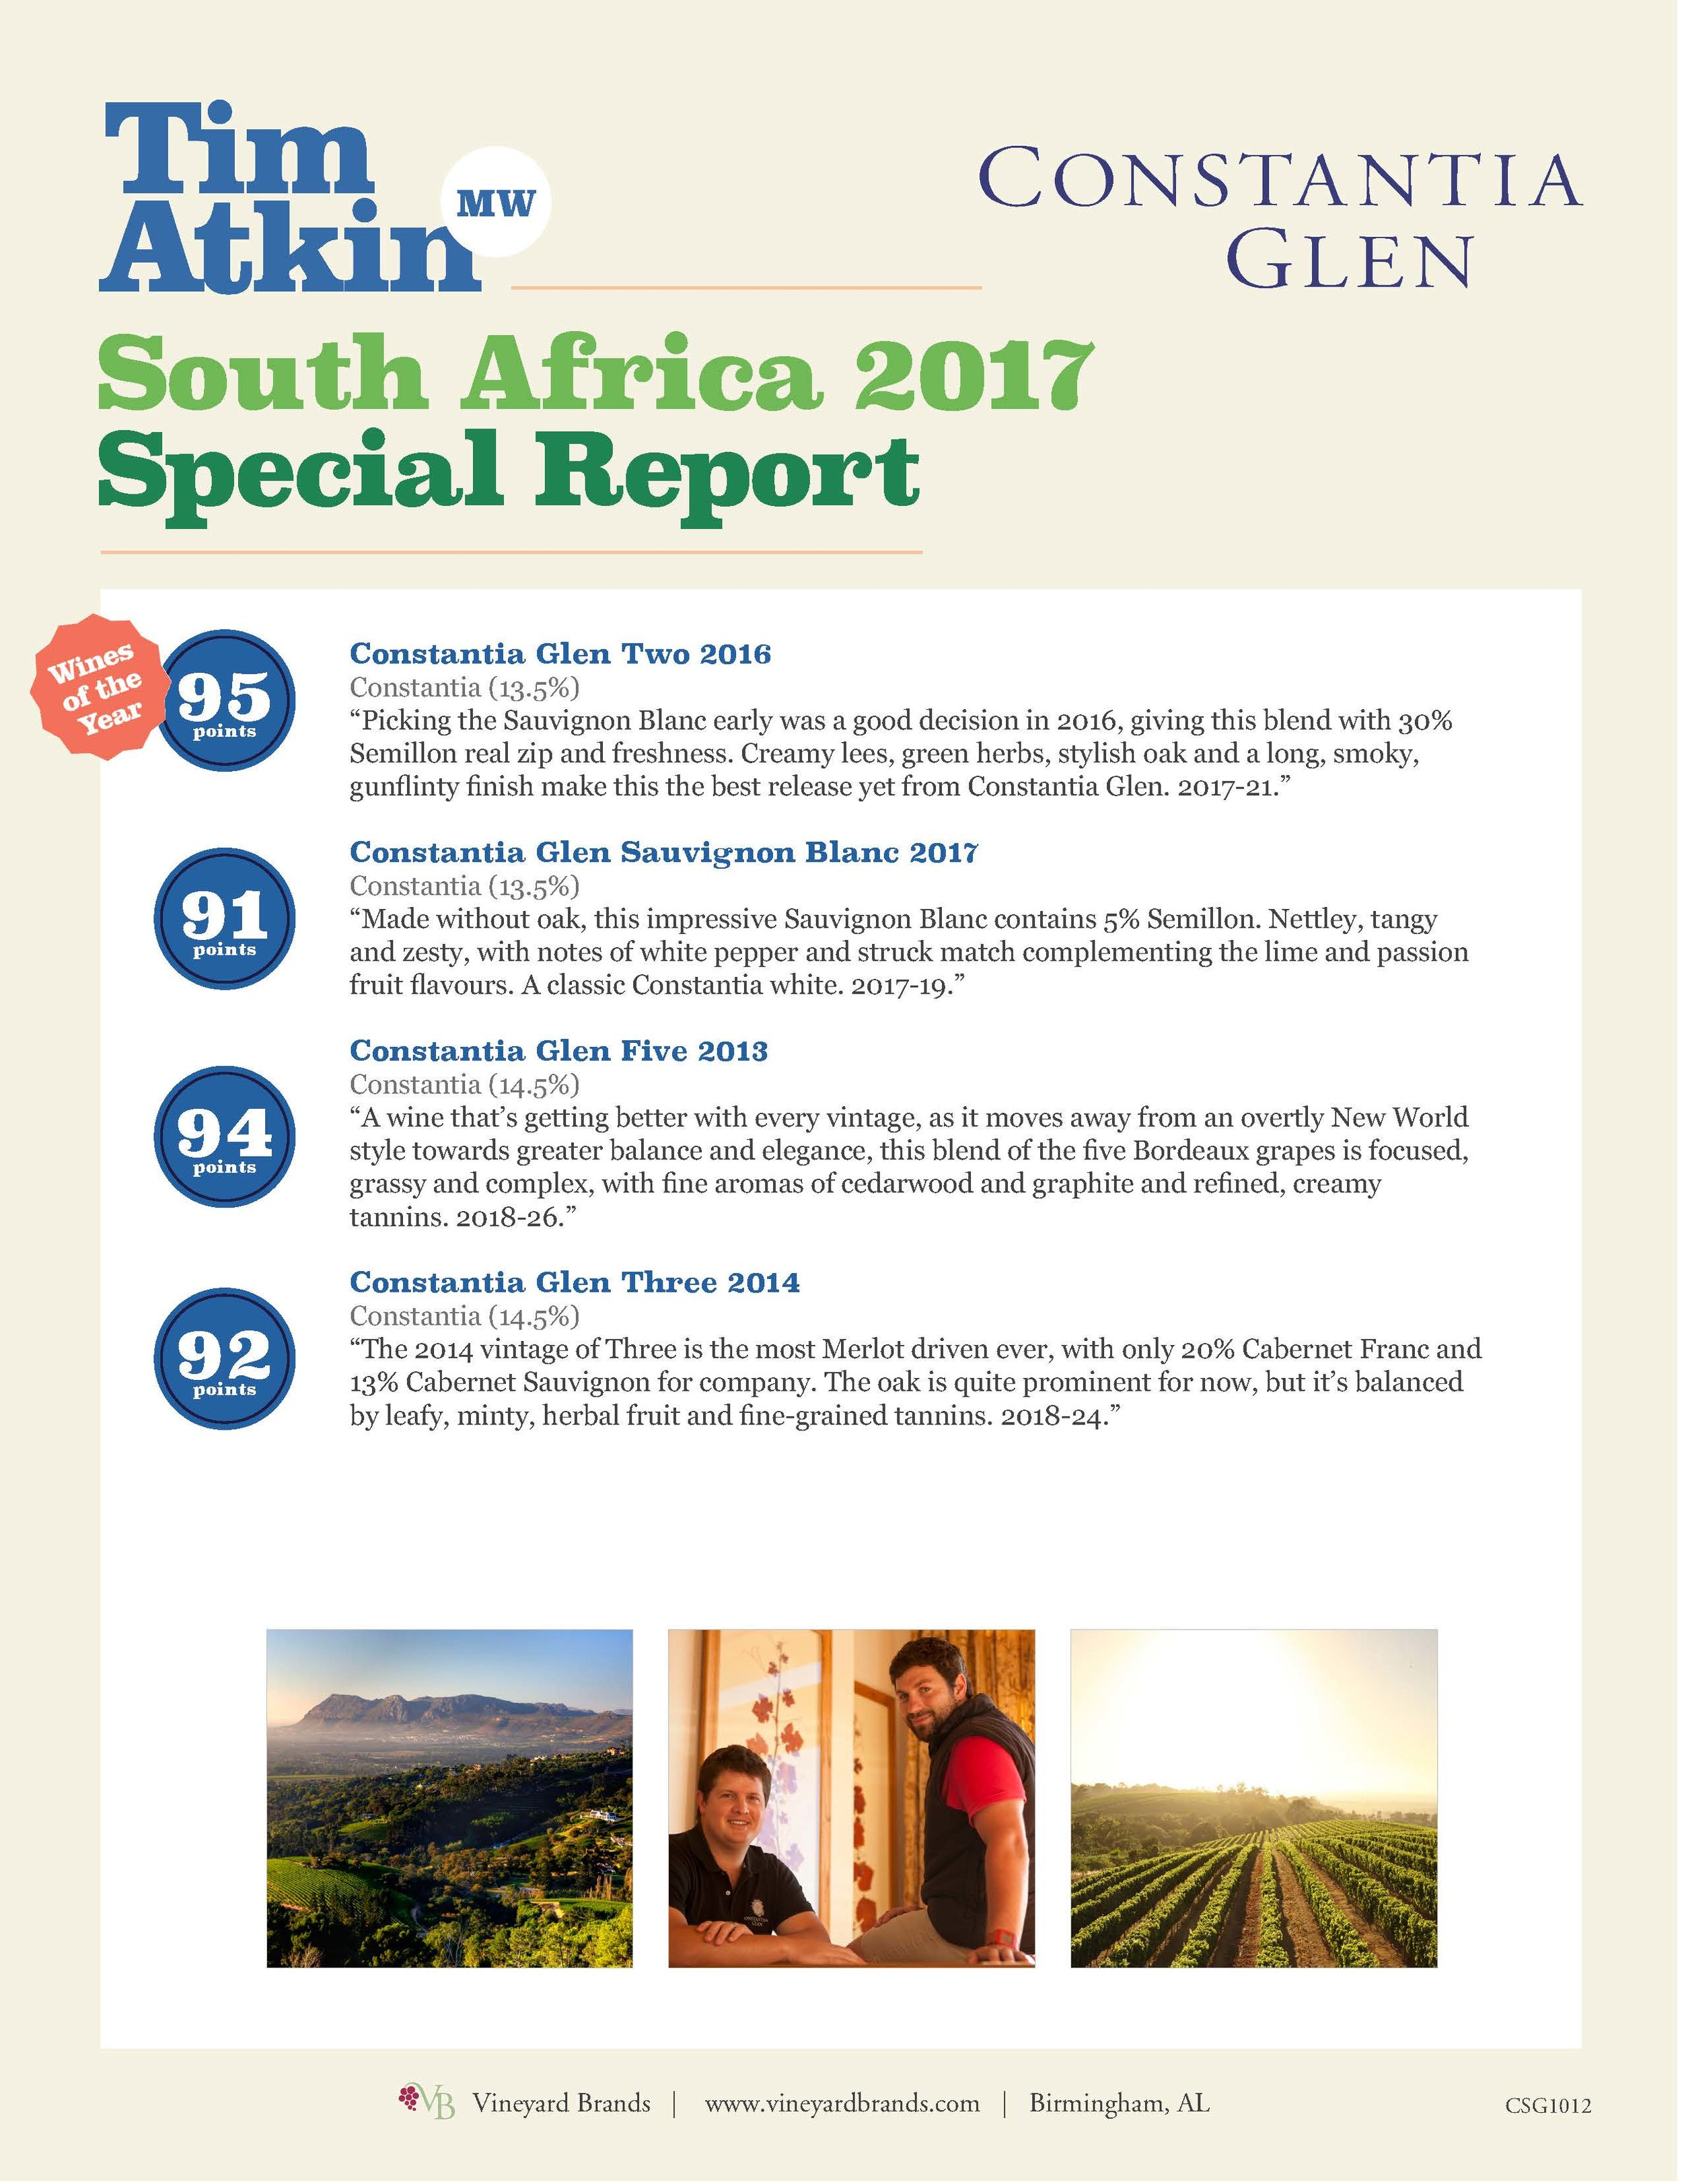 Constantia Glen Tim Atkin Multi Report.jpg